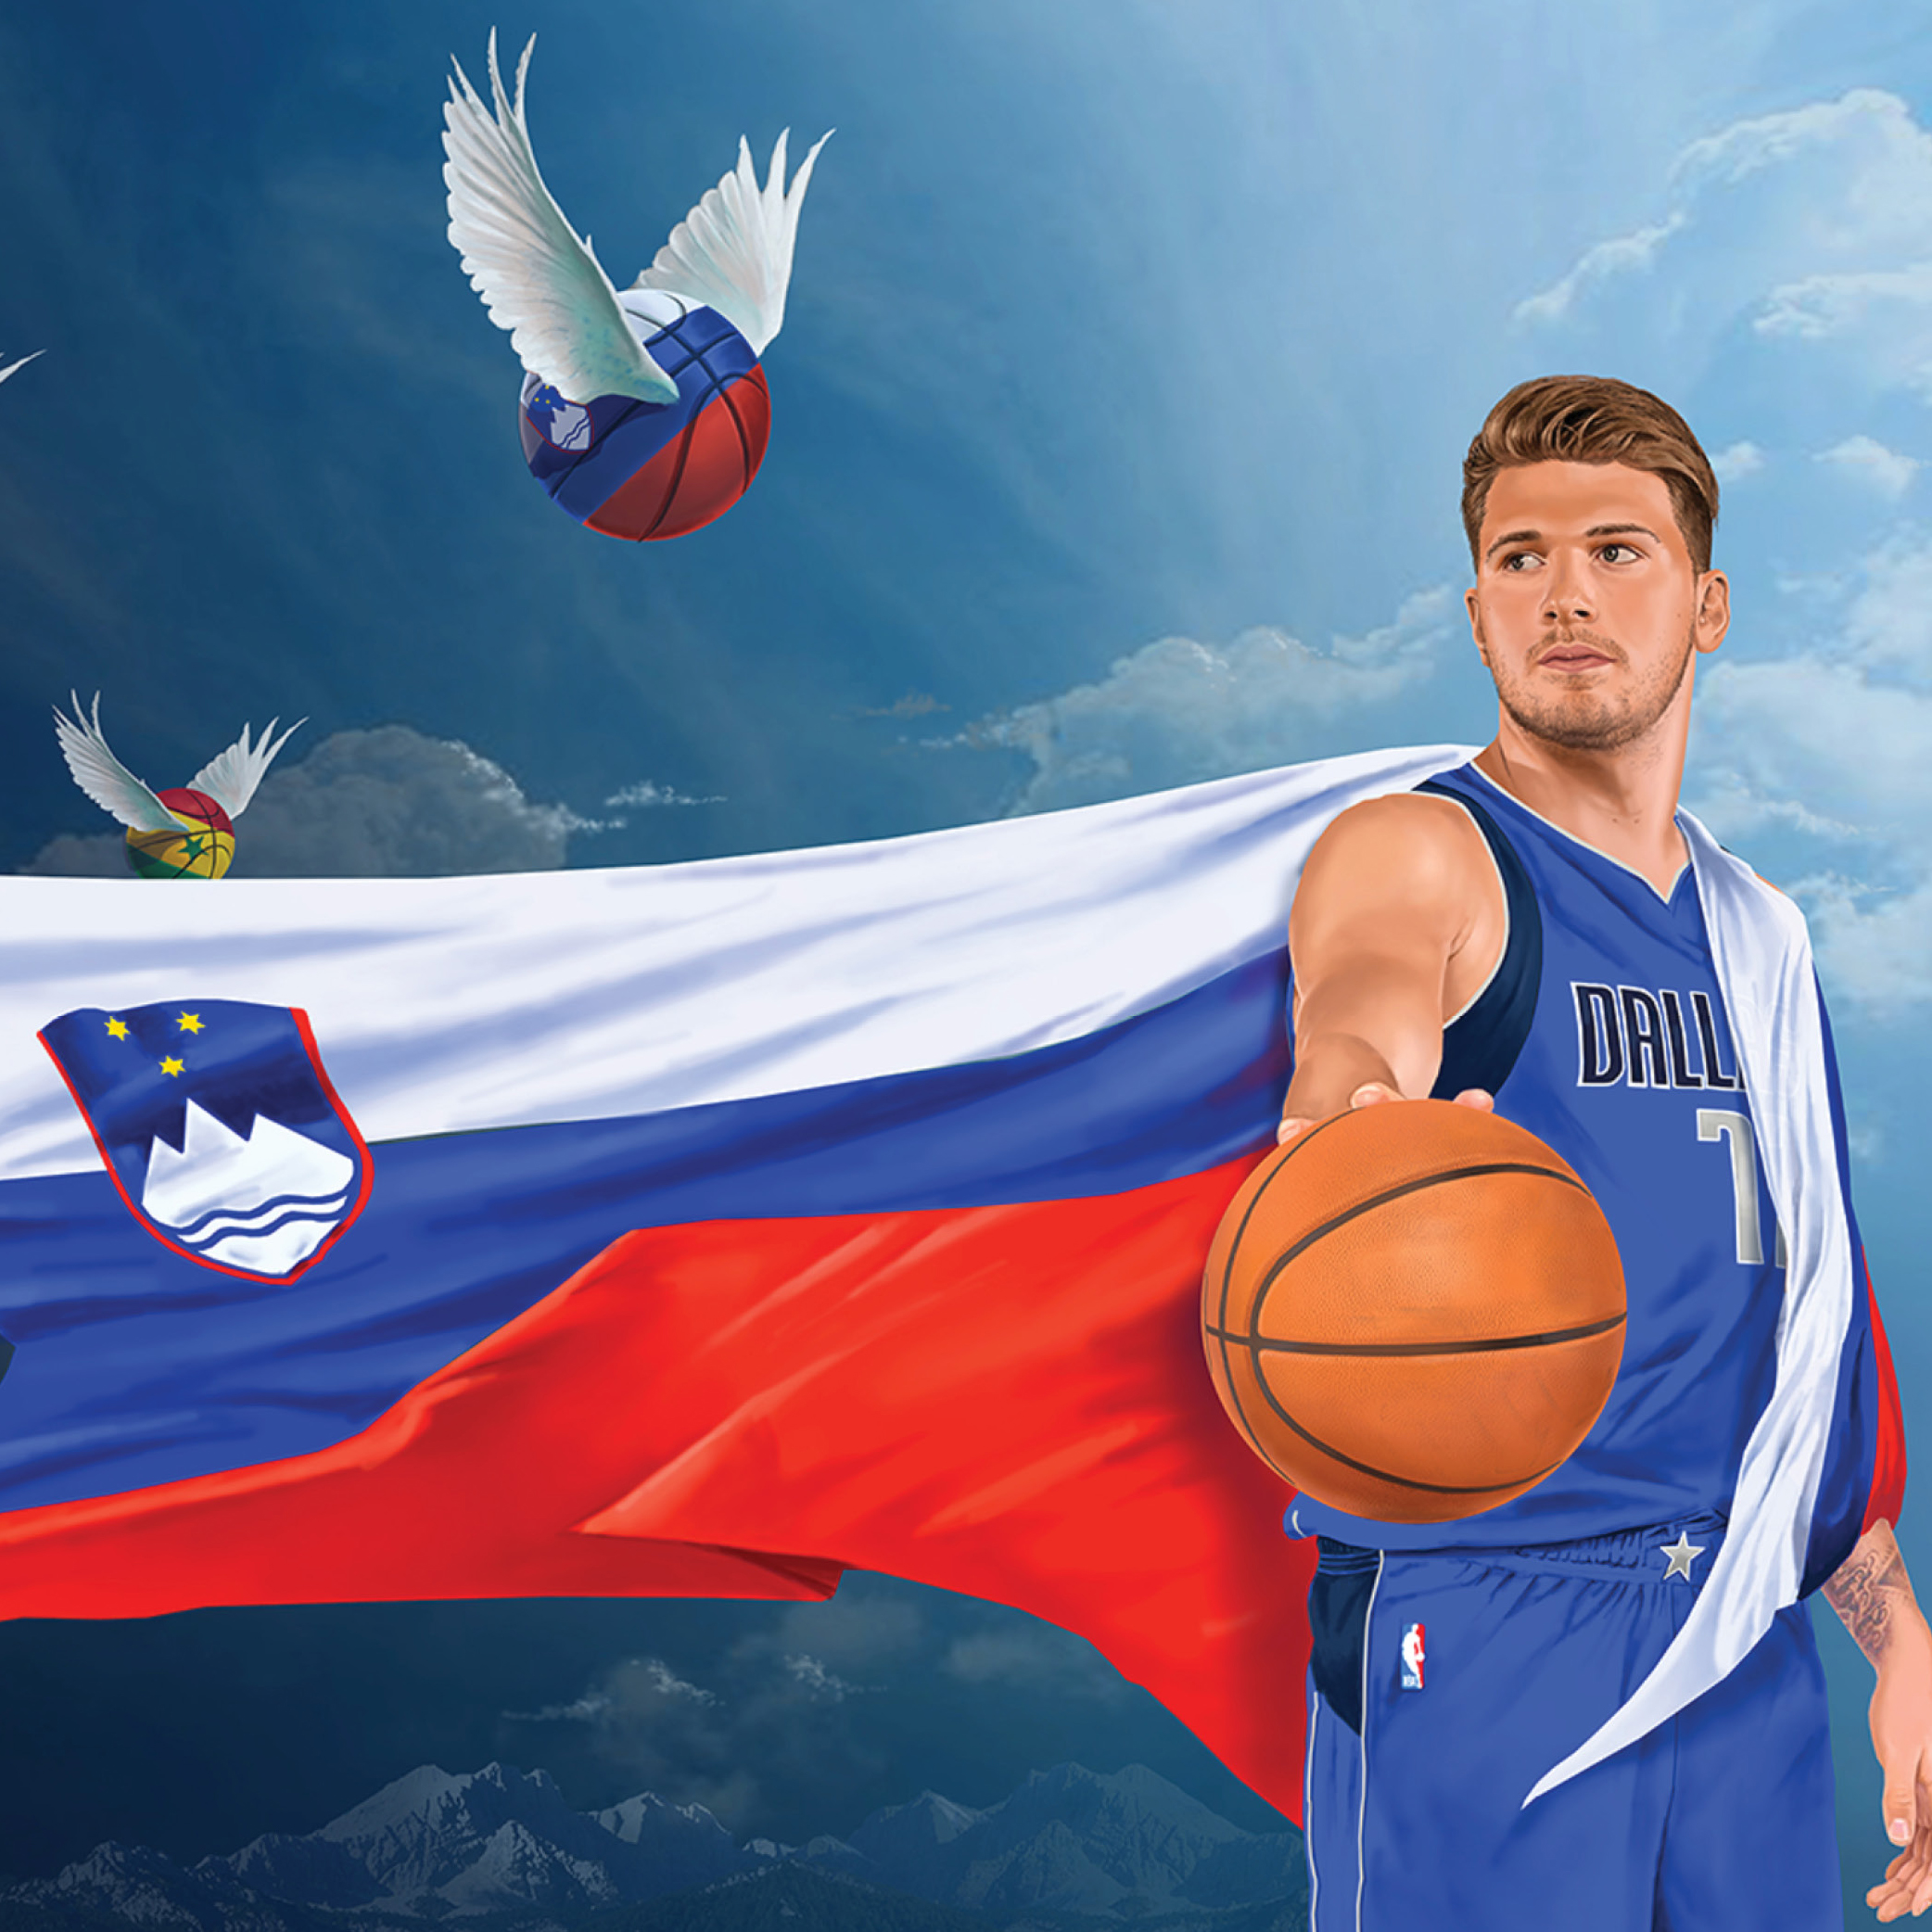 Luka Doncic holds a basketball, draped in a Slovenian flag as other internationally styled basketballs fly by in the background.